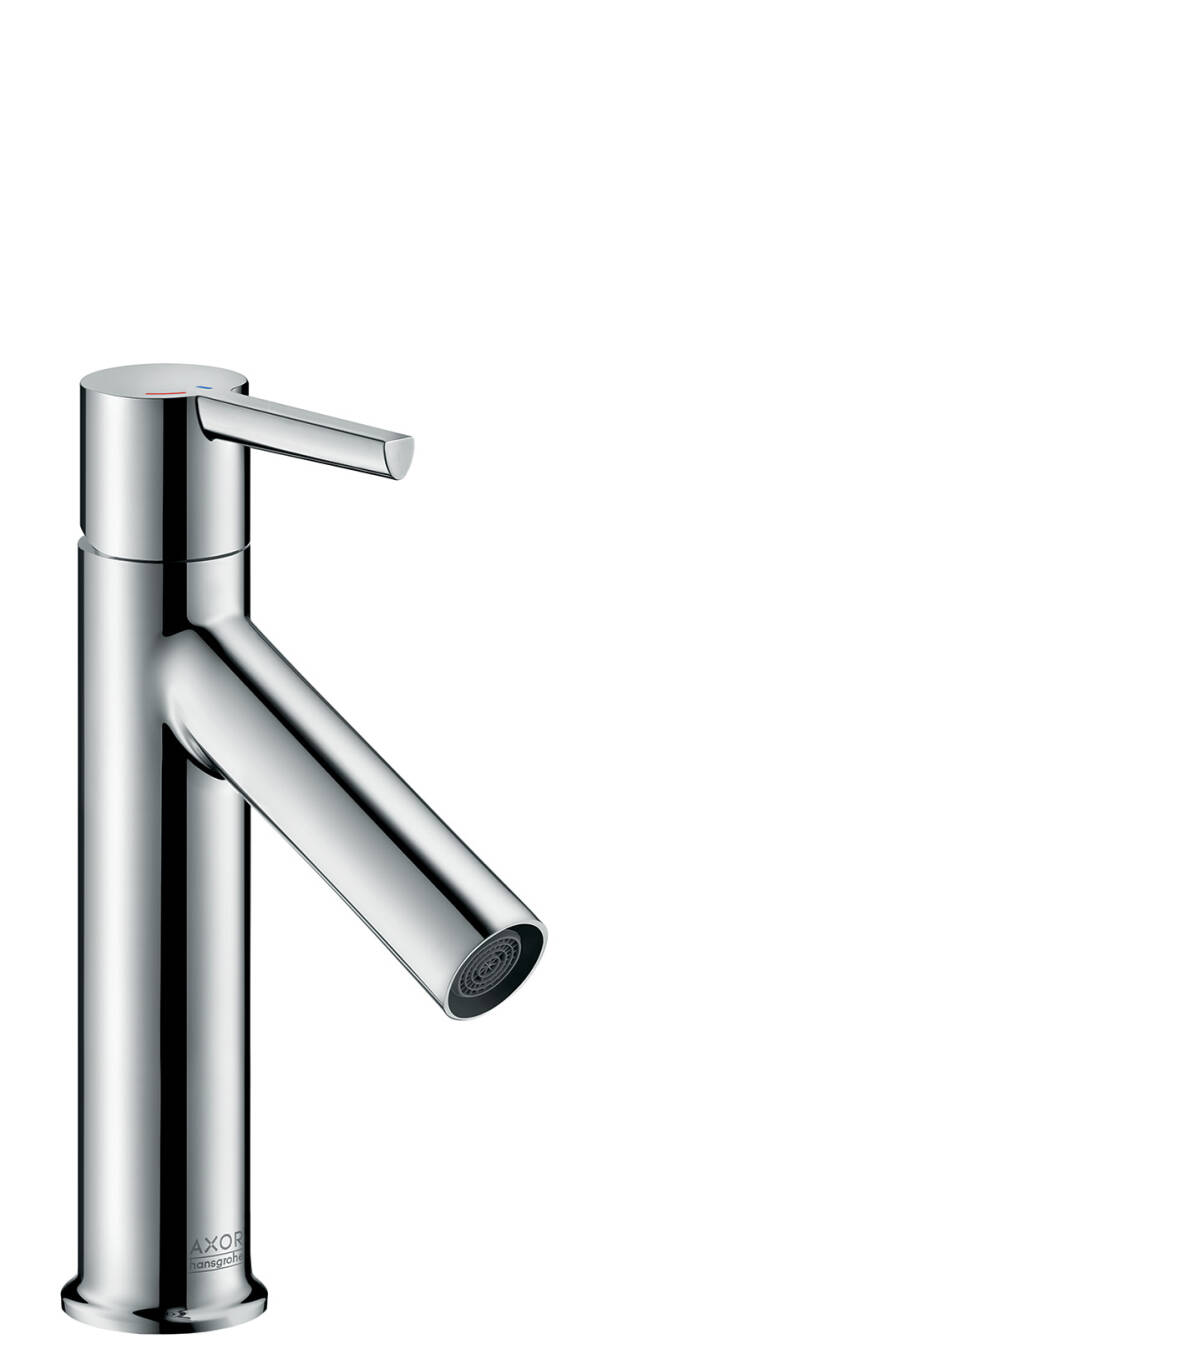 Single lever basin mixer 100 CoolStart with lever handle, Chrome, 10007000